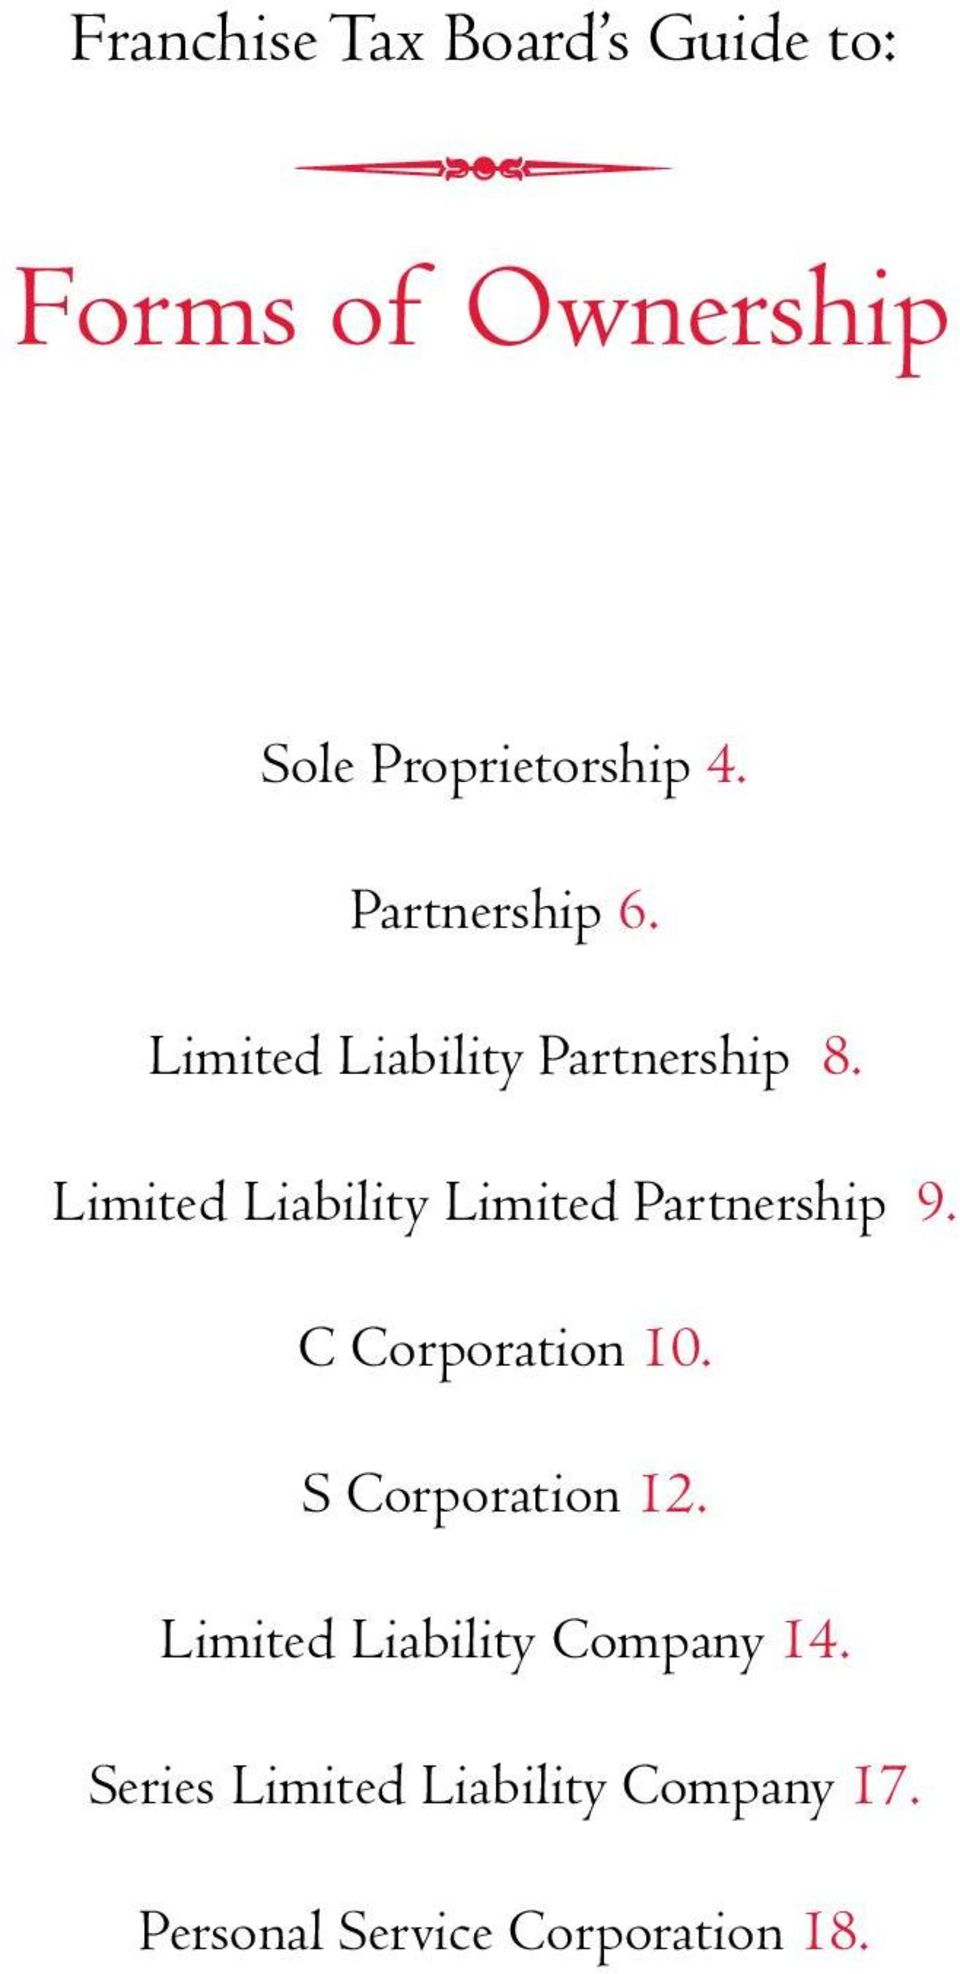 Limited Liability Limited Partnership 9. C Corporation 10.